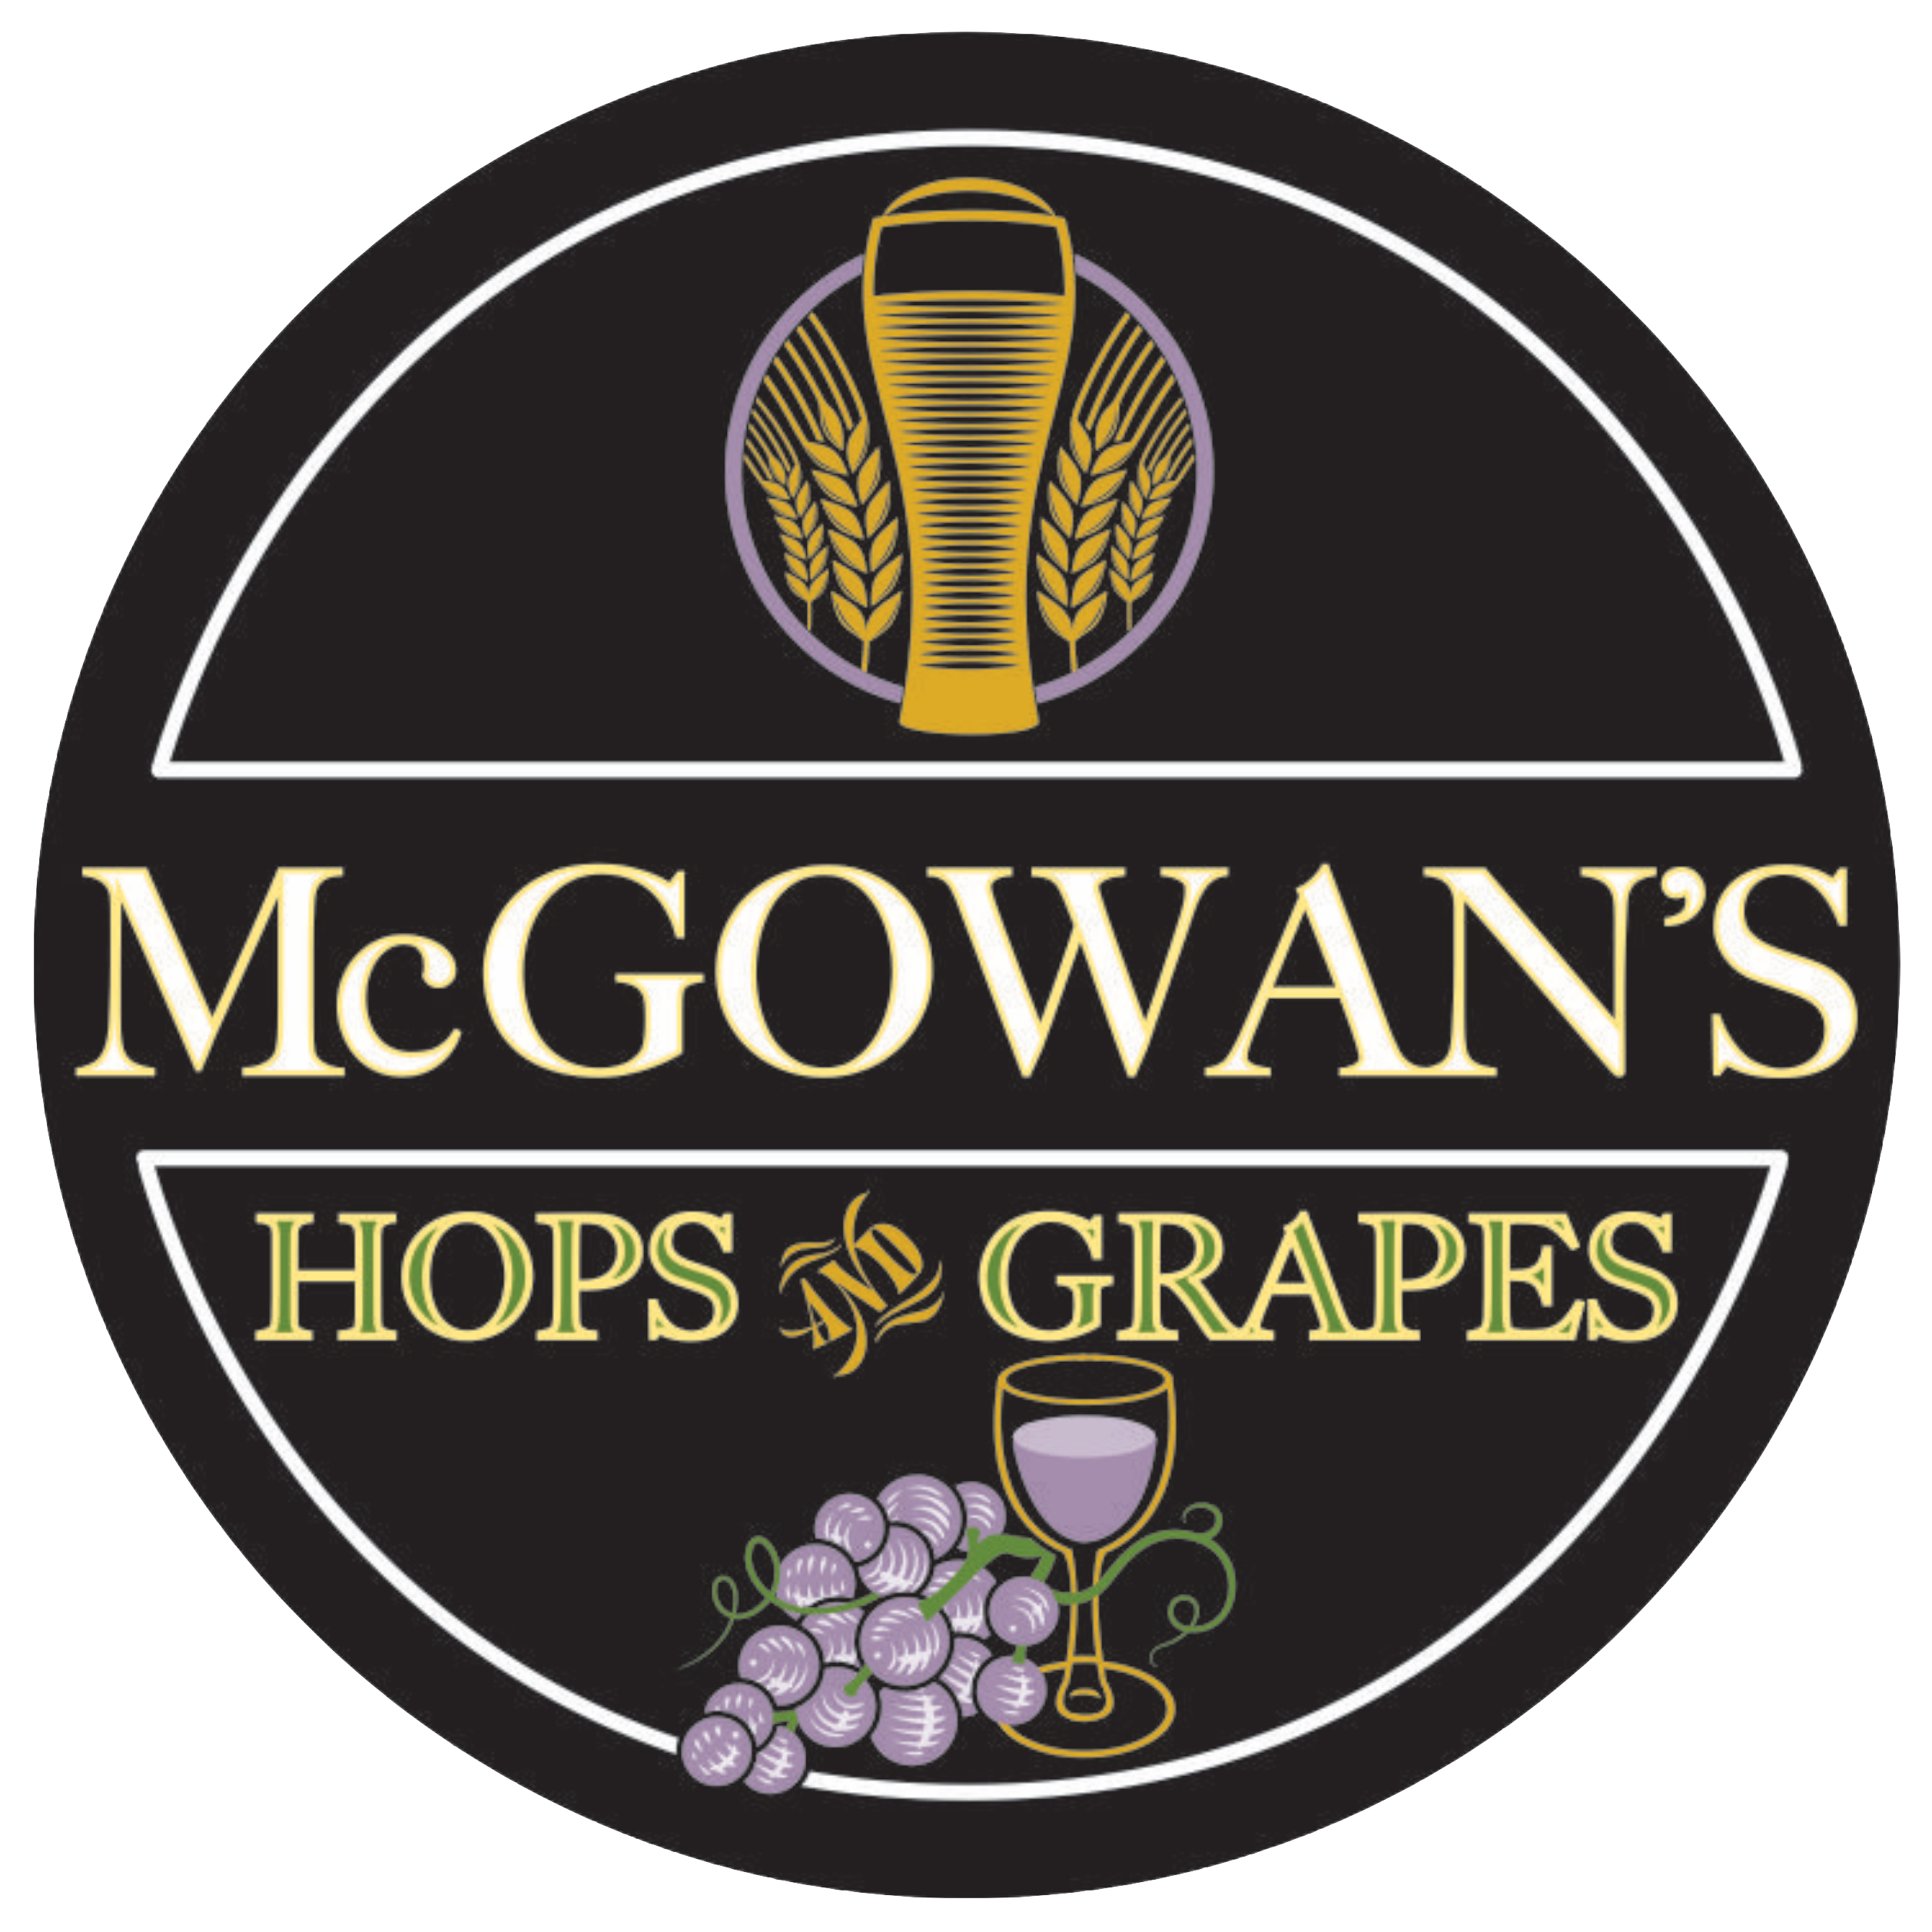 McGowan's Hops & Grapes